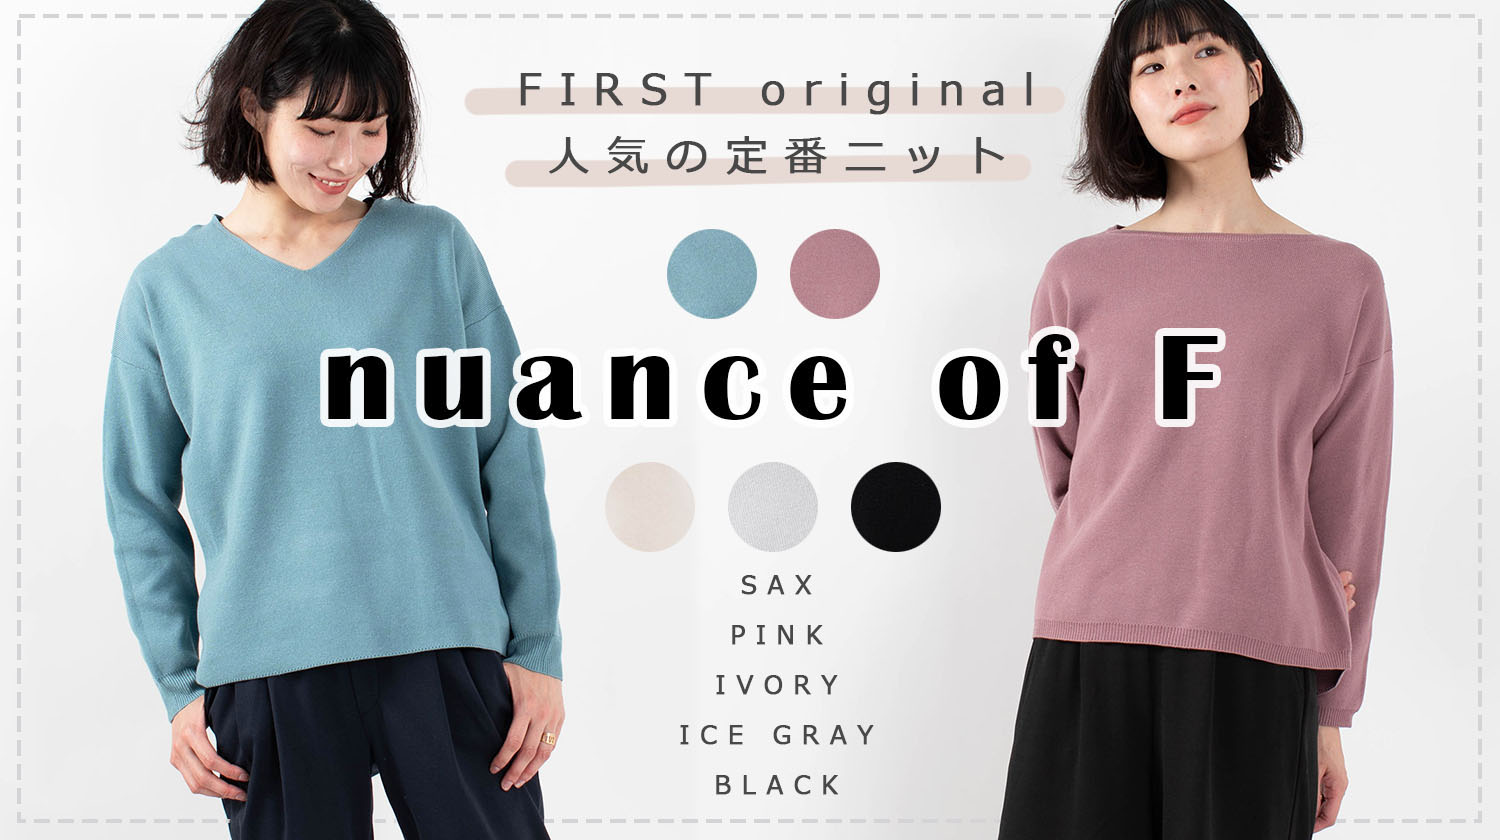 nuance of F 新色